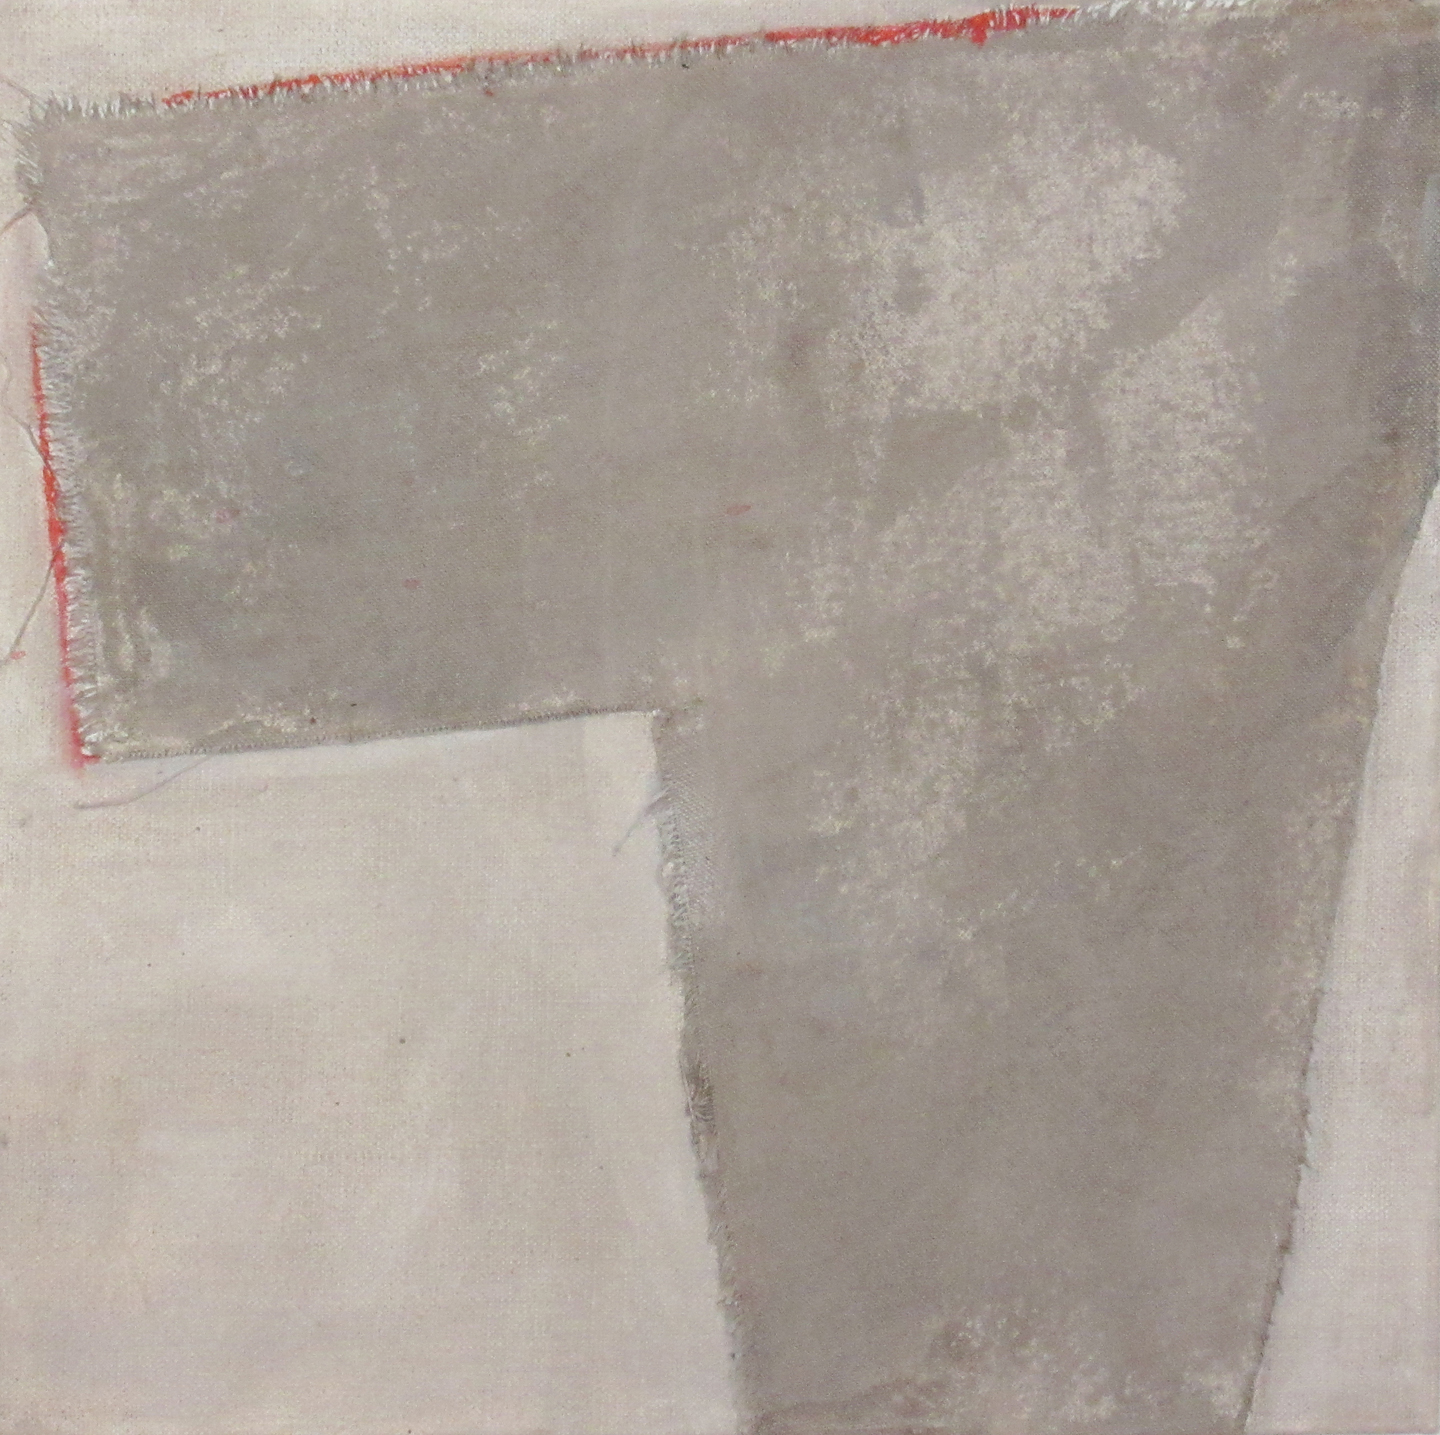 Taupe with Red I, 2016, fabric, acrylic and pencil on canvas, 12 x 12 in, $700